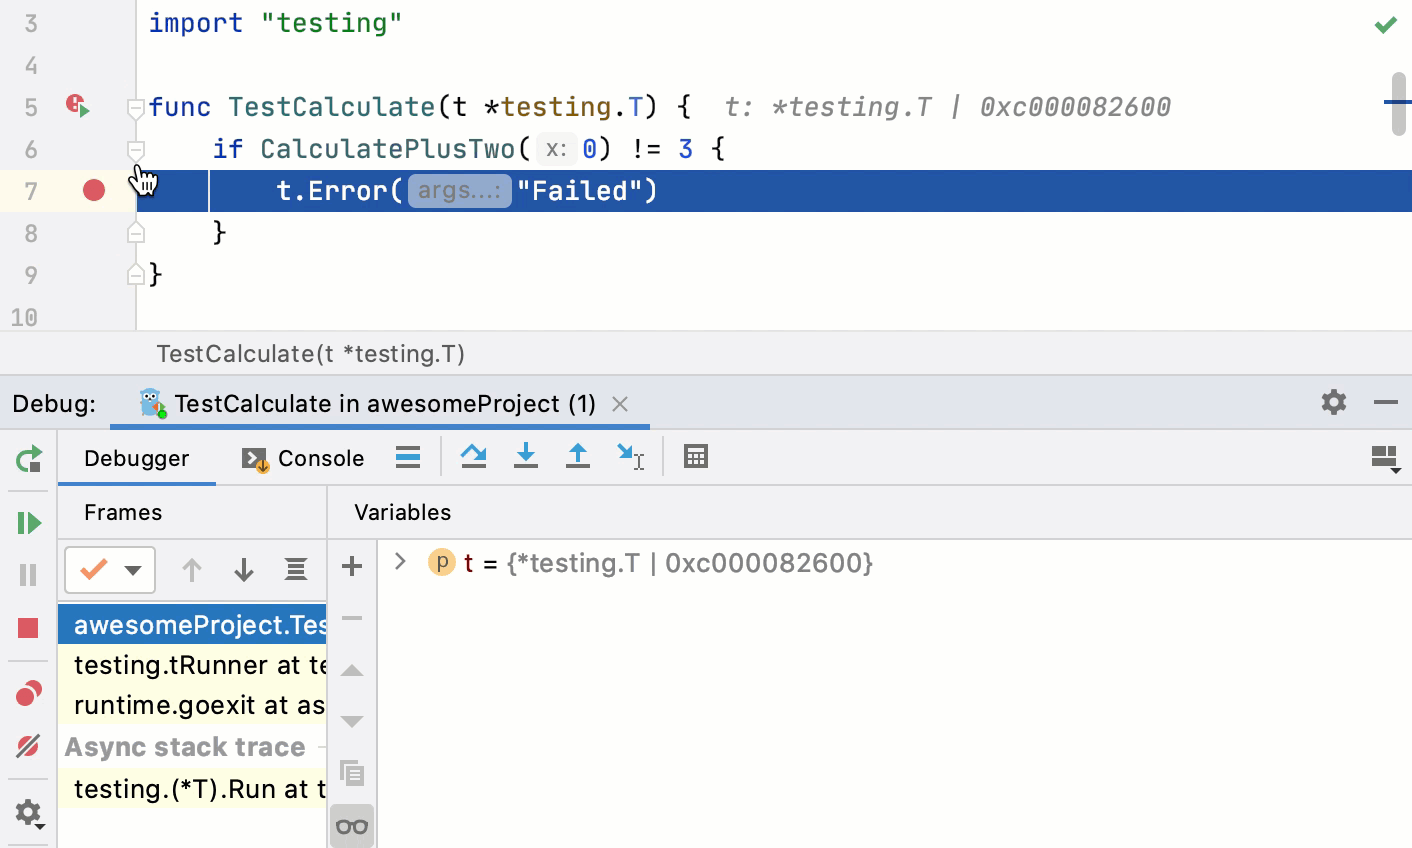 Debugging a test using the gutter icon